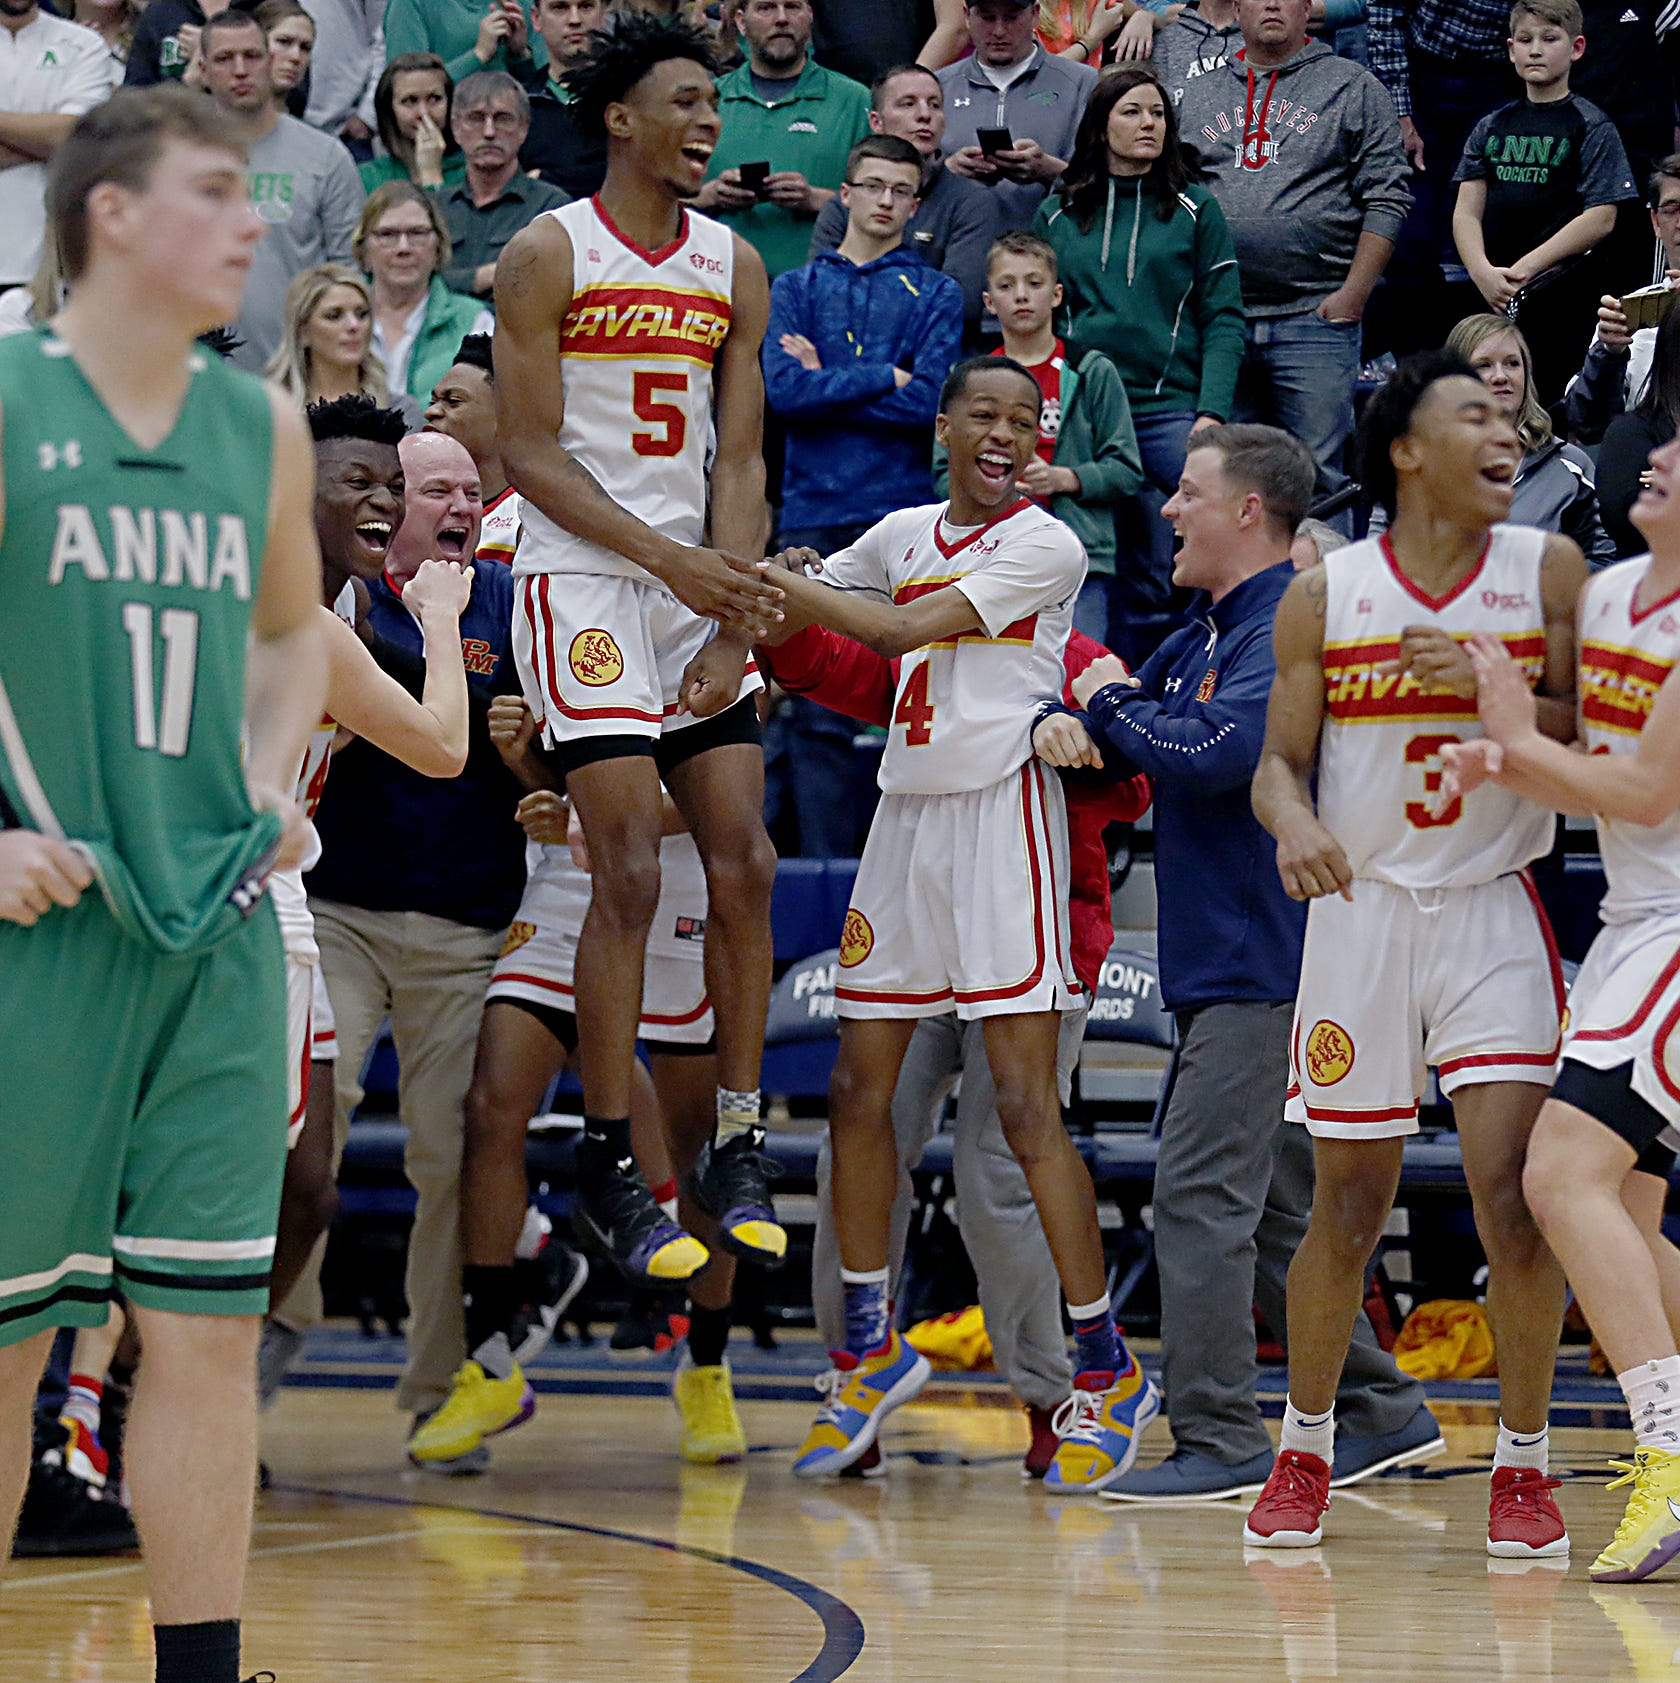 Purcell Marian reacts as time expires in their Division III regional final victory over Anna at Trent Arena in Kettering Saturday, March 16, 2019.